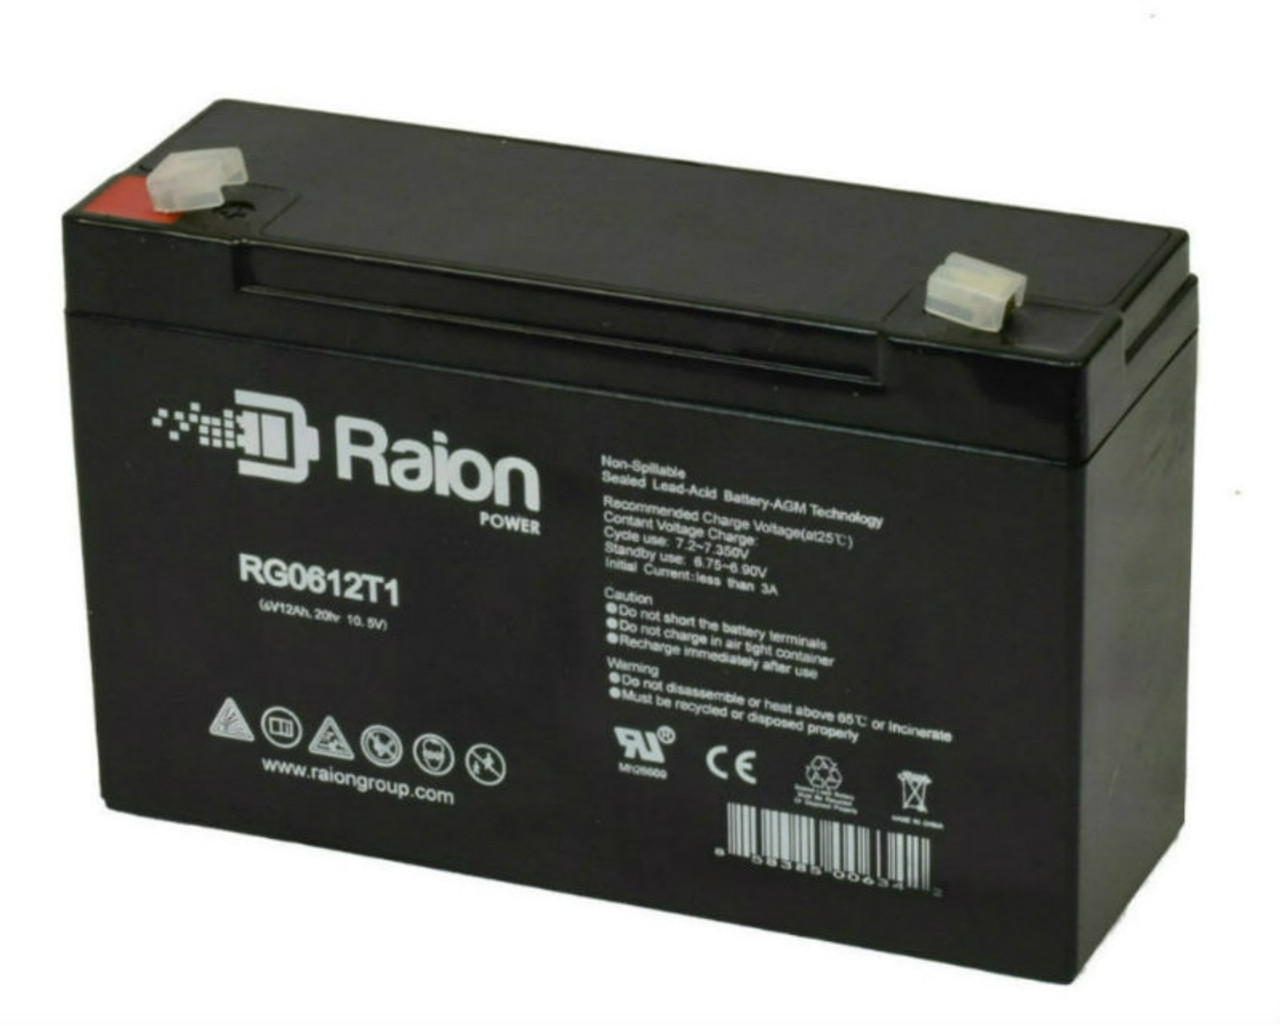 Raion Power RG06120T1 Replacement Battery Pack for Sonnenschein S1103 emergency light